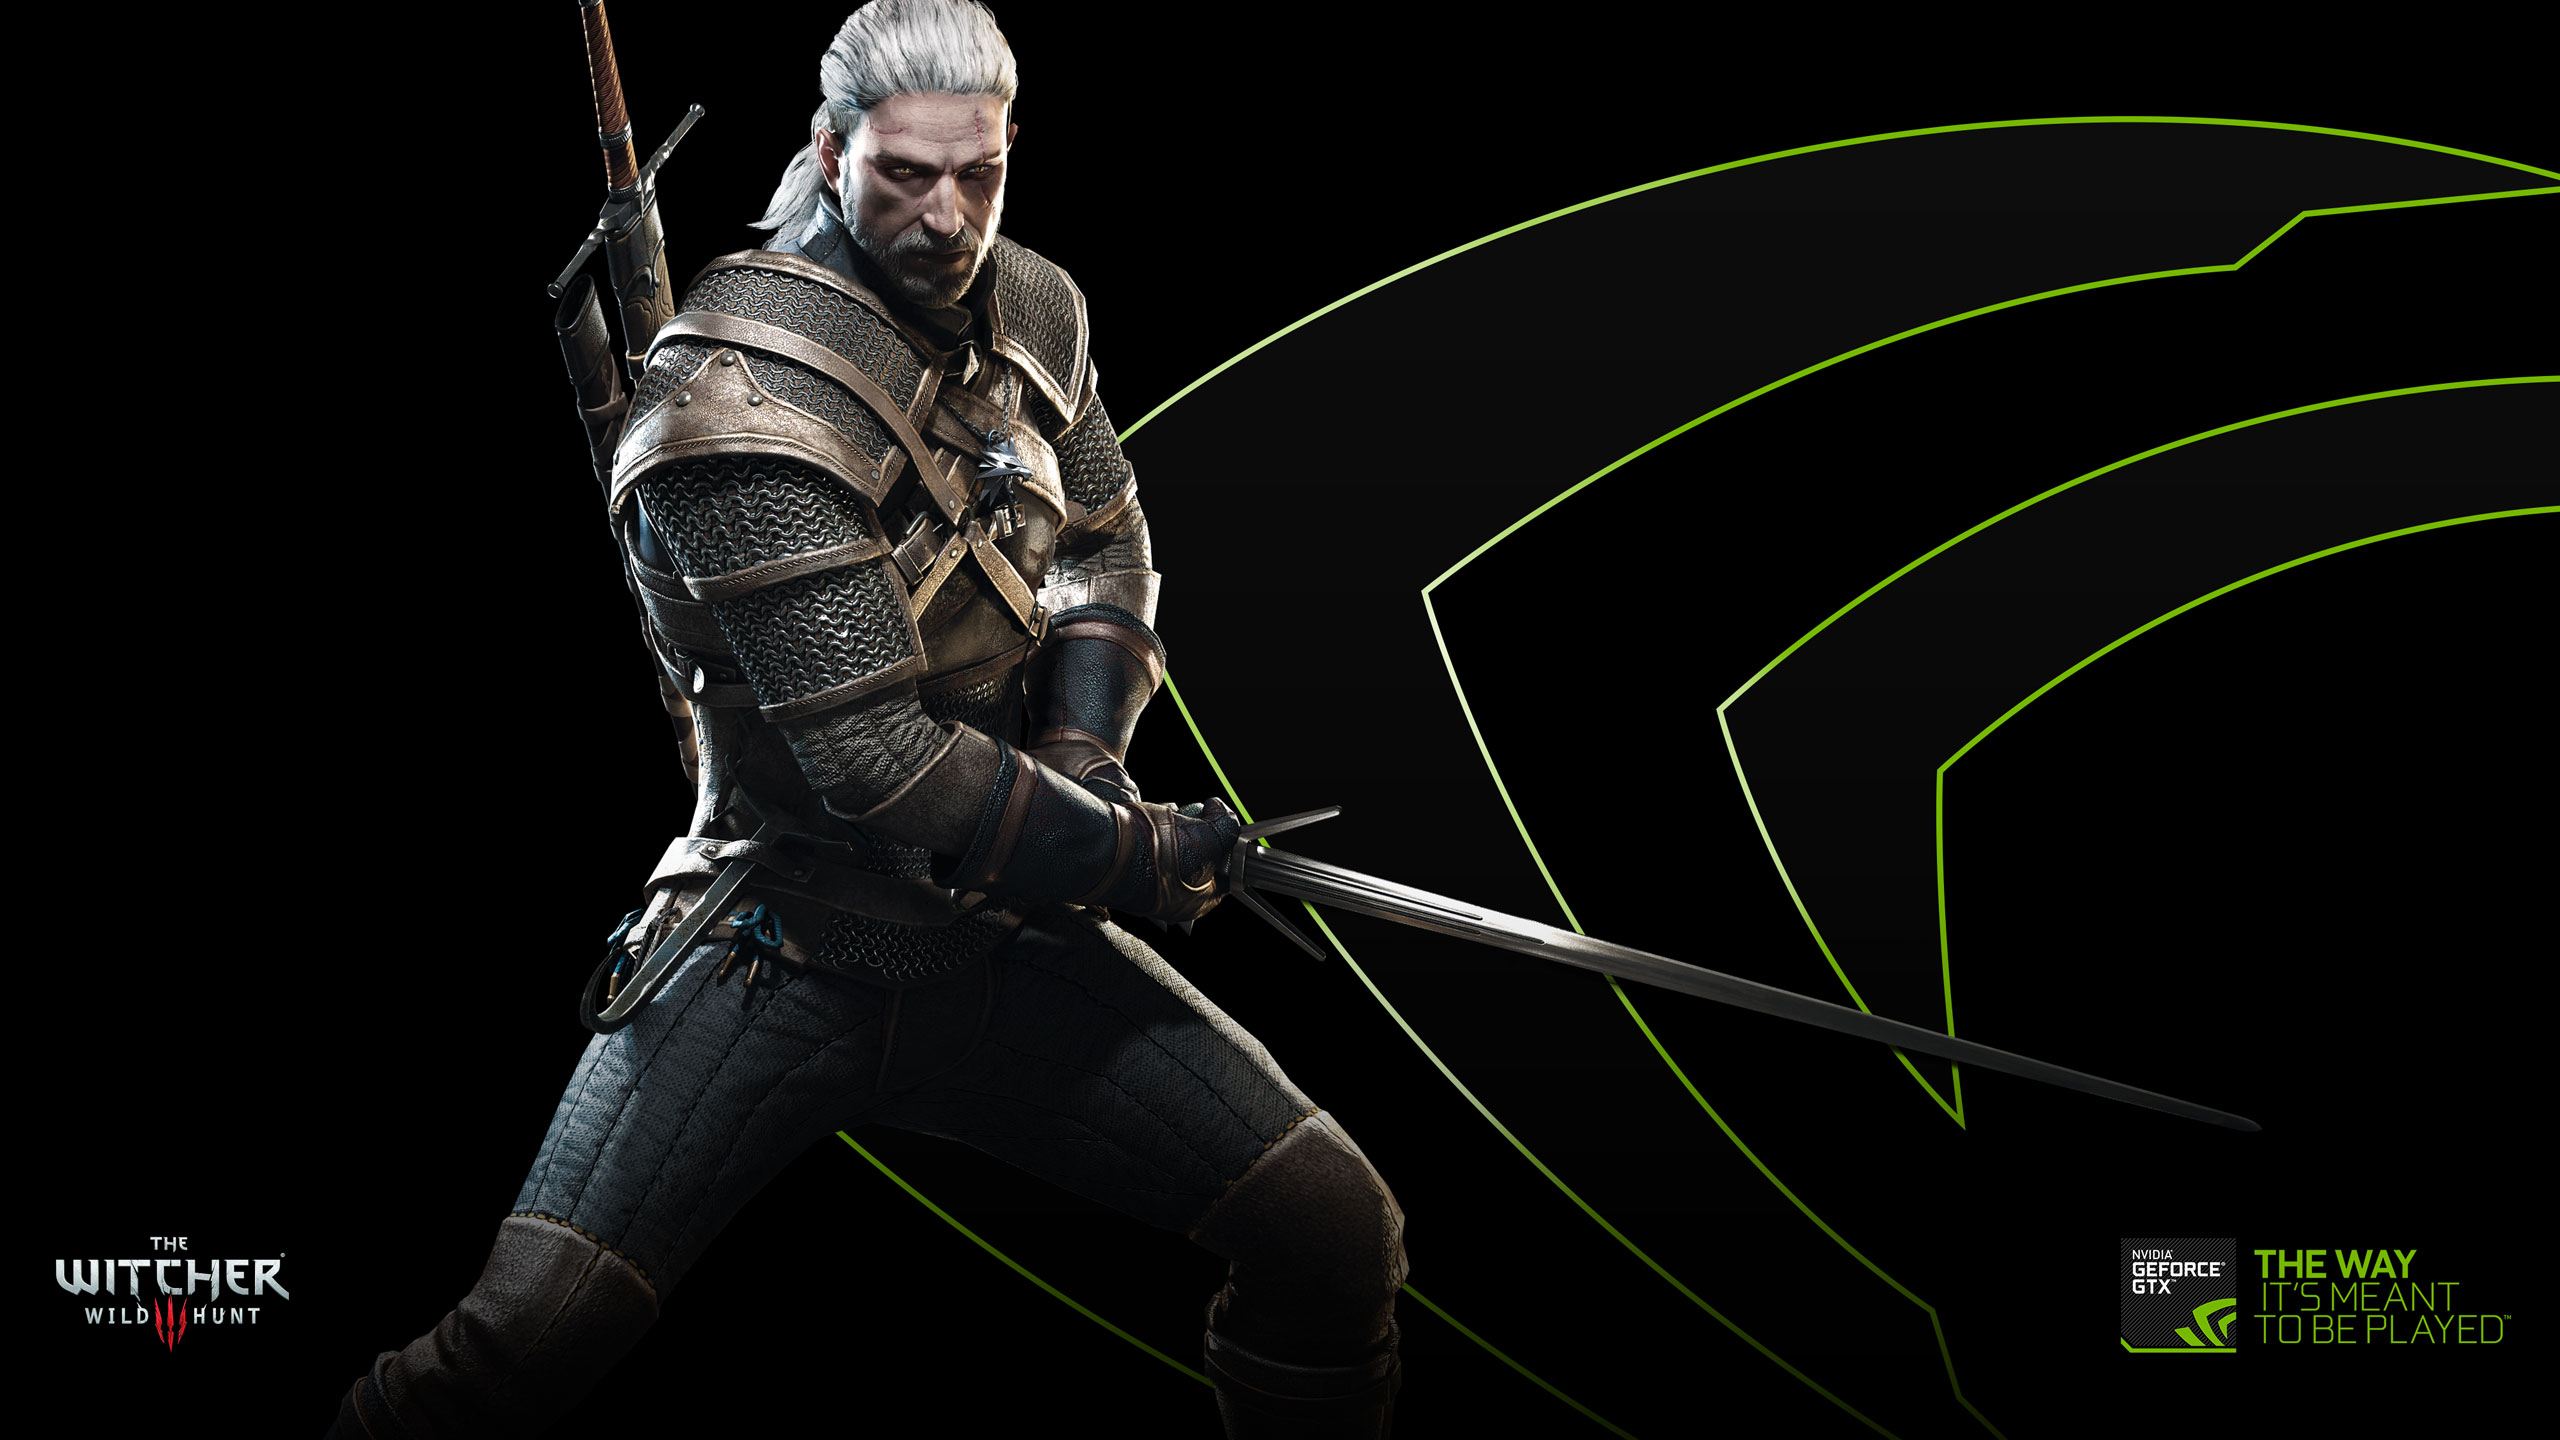 Nvidia Wallpaper: Download Exclusive The Witcher 3: Wild Hunt Wallpapers